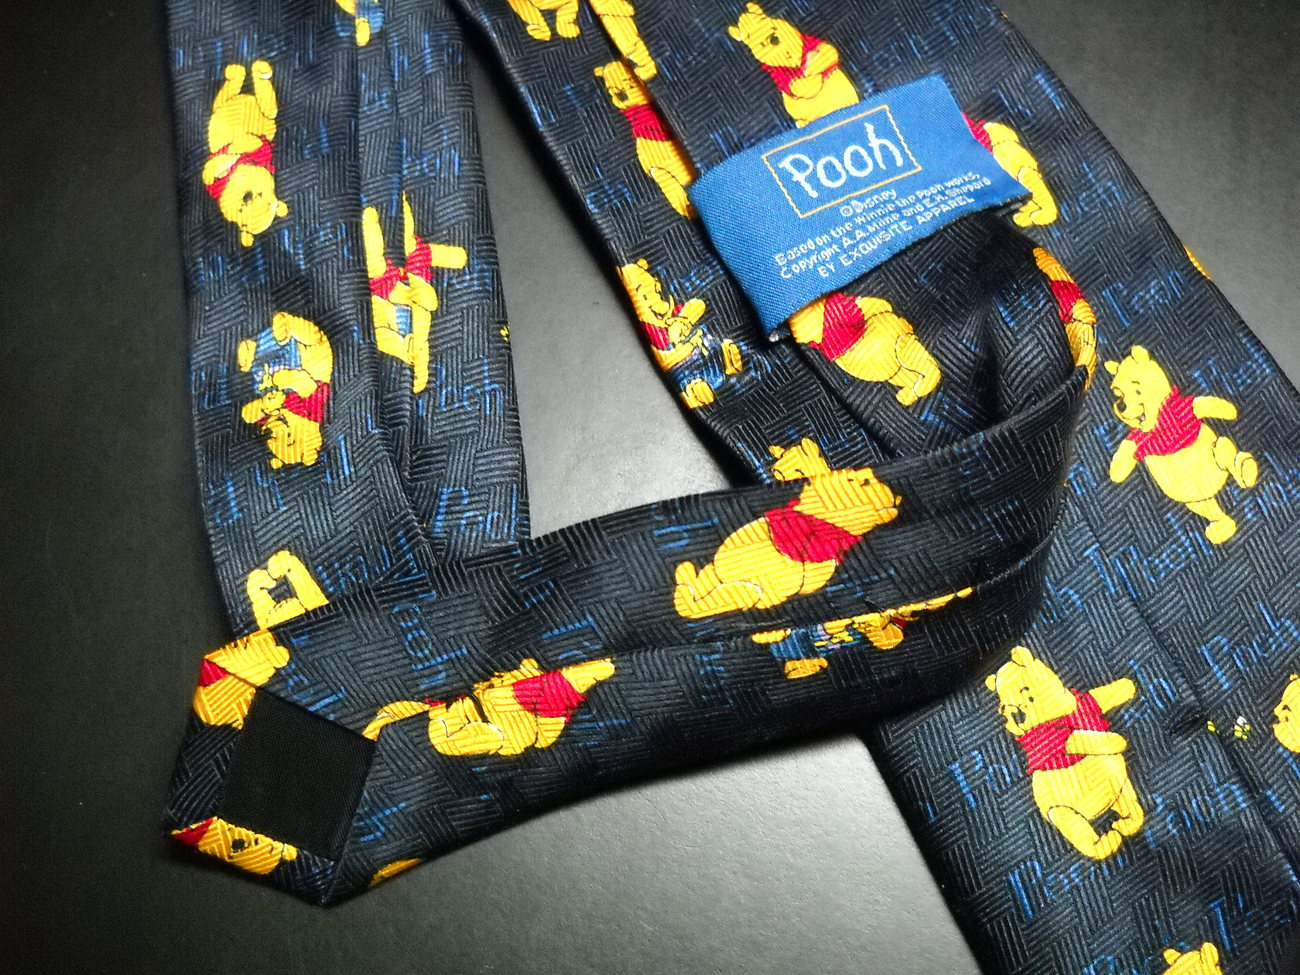 Disney Pooh Neck Tie Winnie the Pooh Repeats in Color on Dark Blue Background